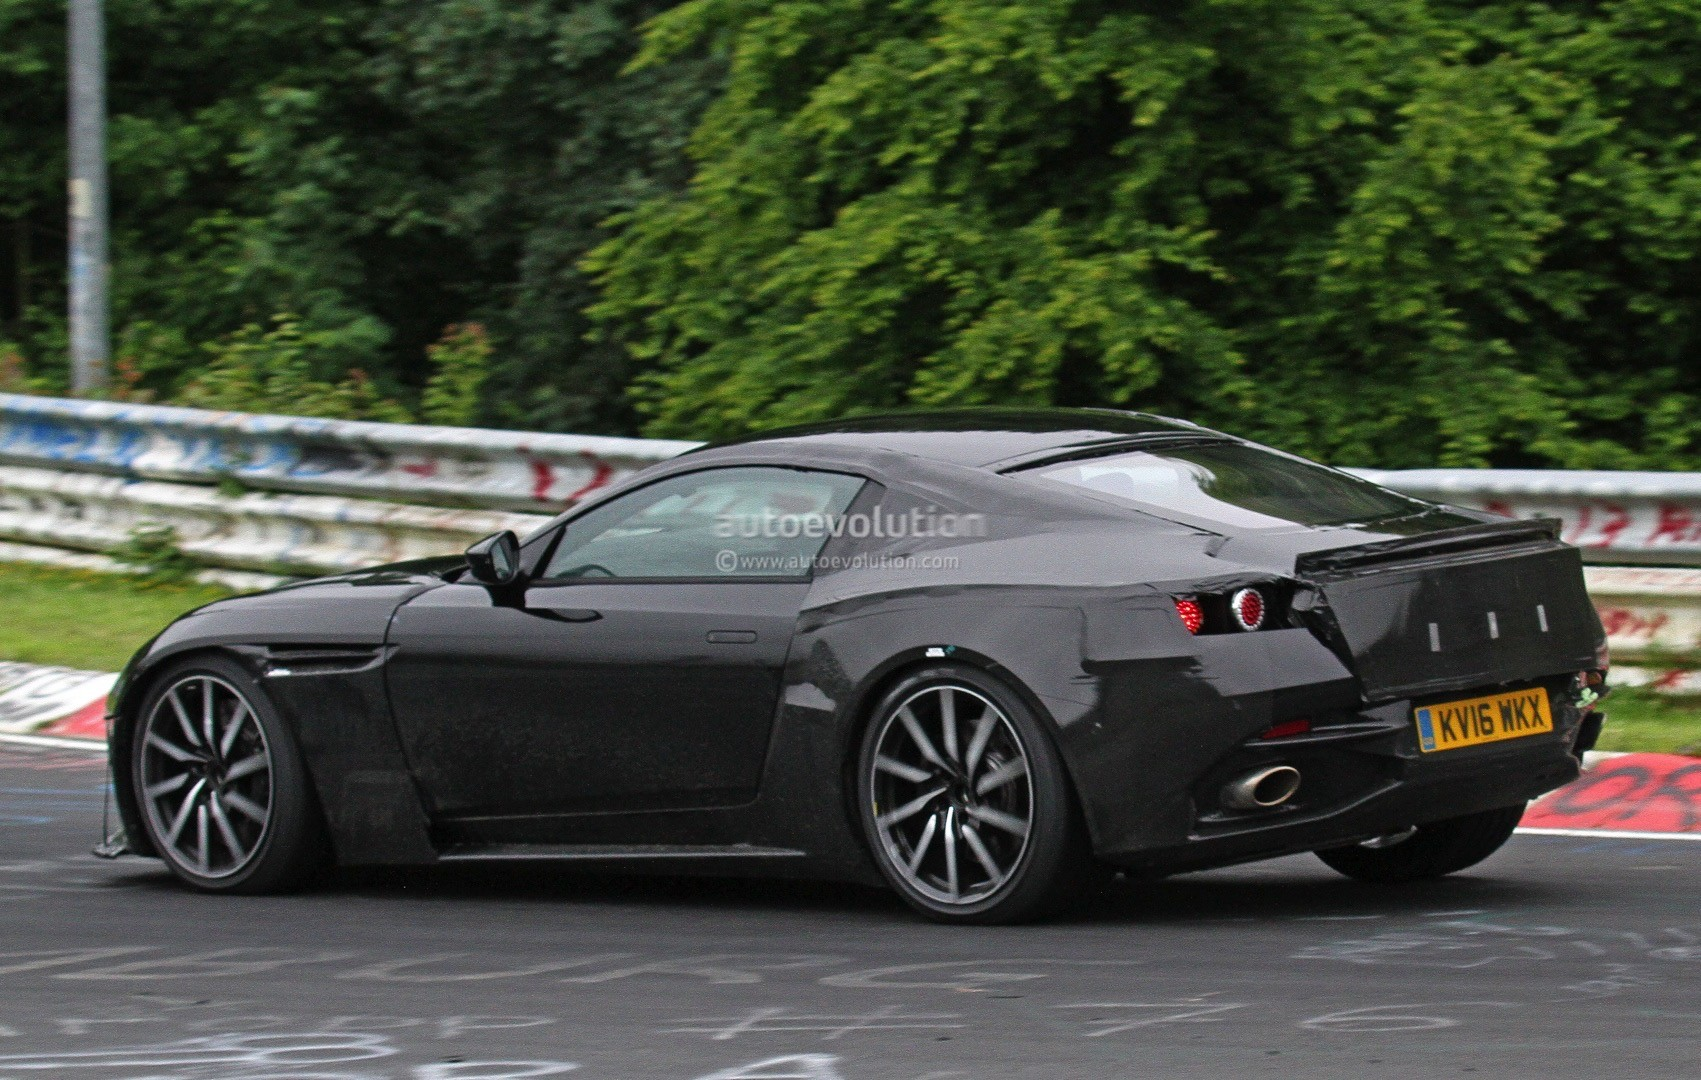 2018 Aston Martin V8 Vantage Spied, Has Mercedes-AMG M178 ...